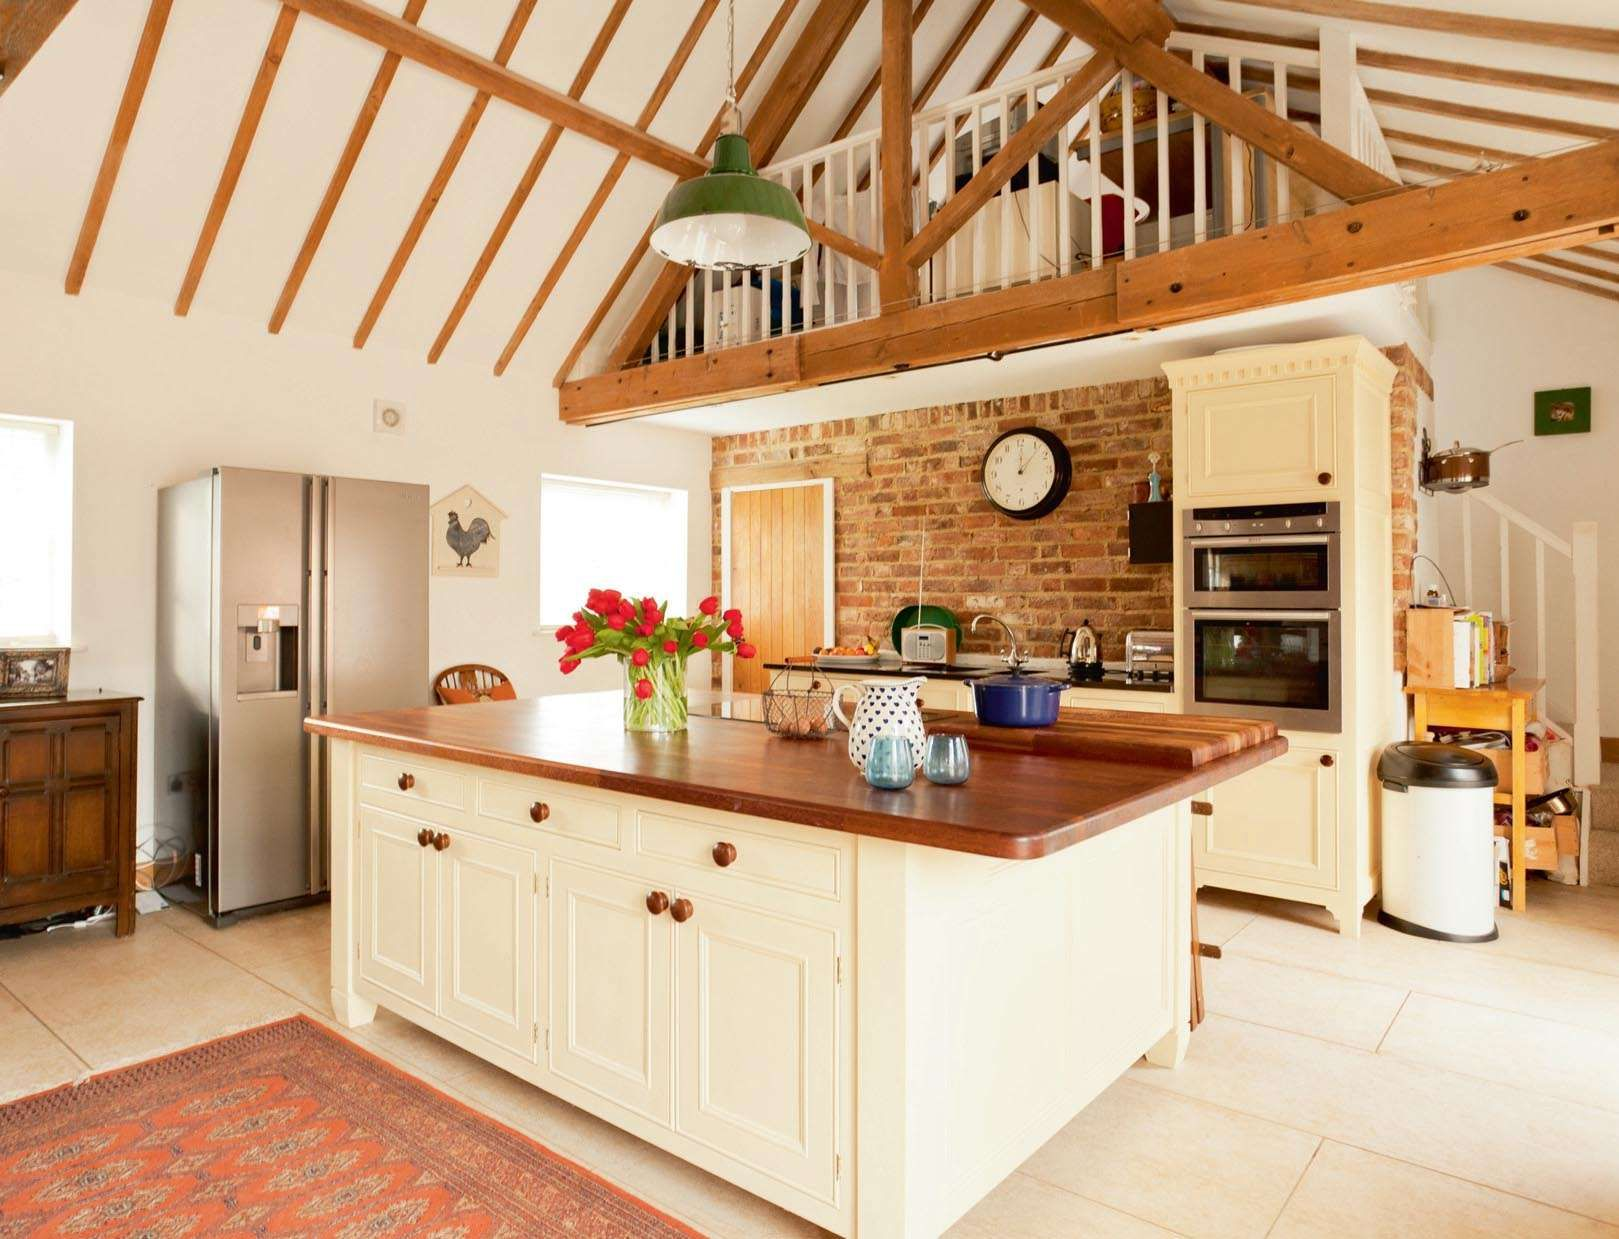 A Modern Barn Conversion Real Homes Barn Kitchen Rustic Kitchen Barn Conversion